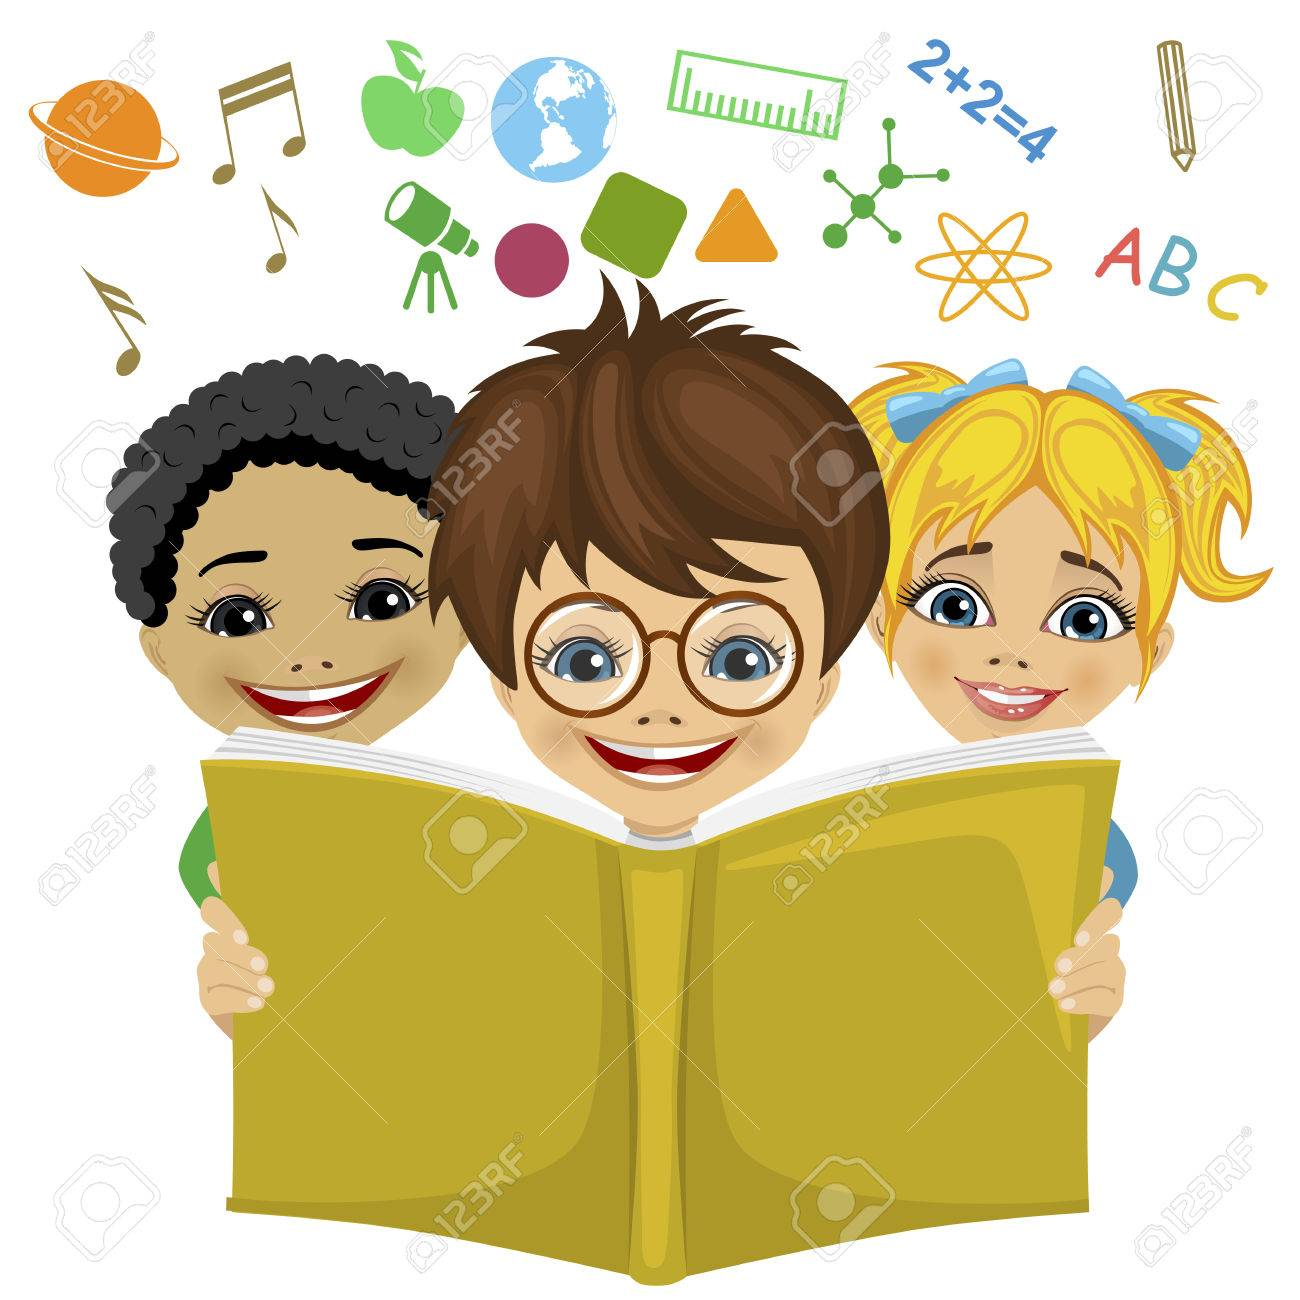 Clipart Related To Education.